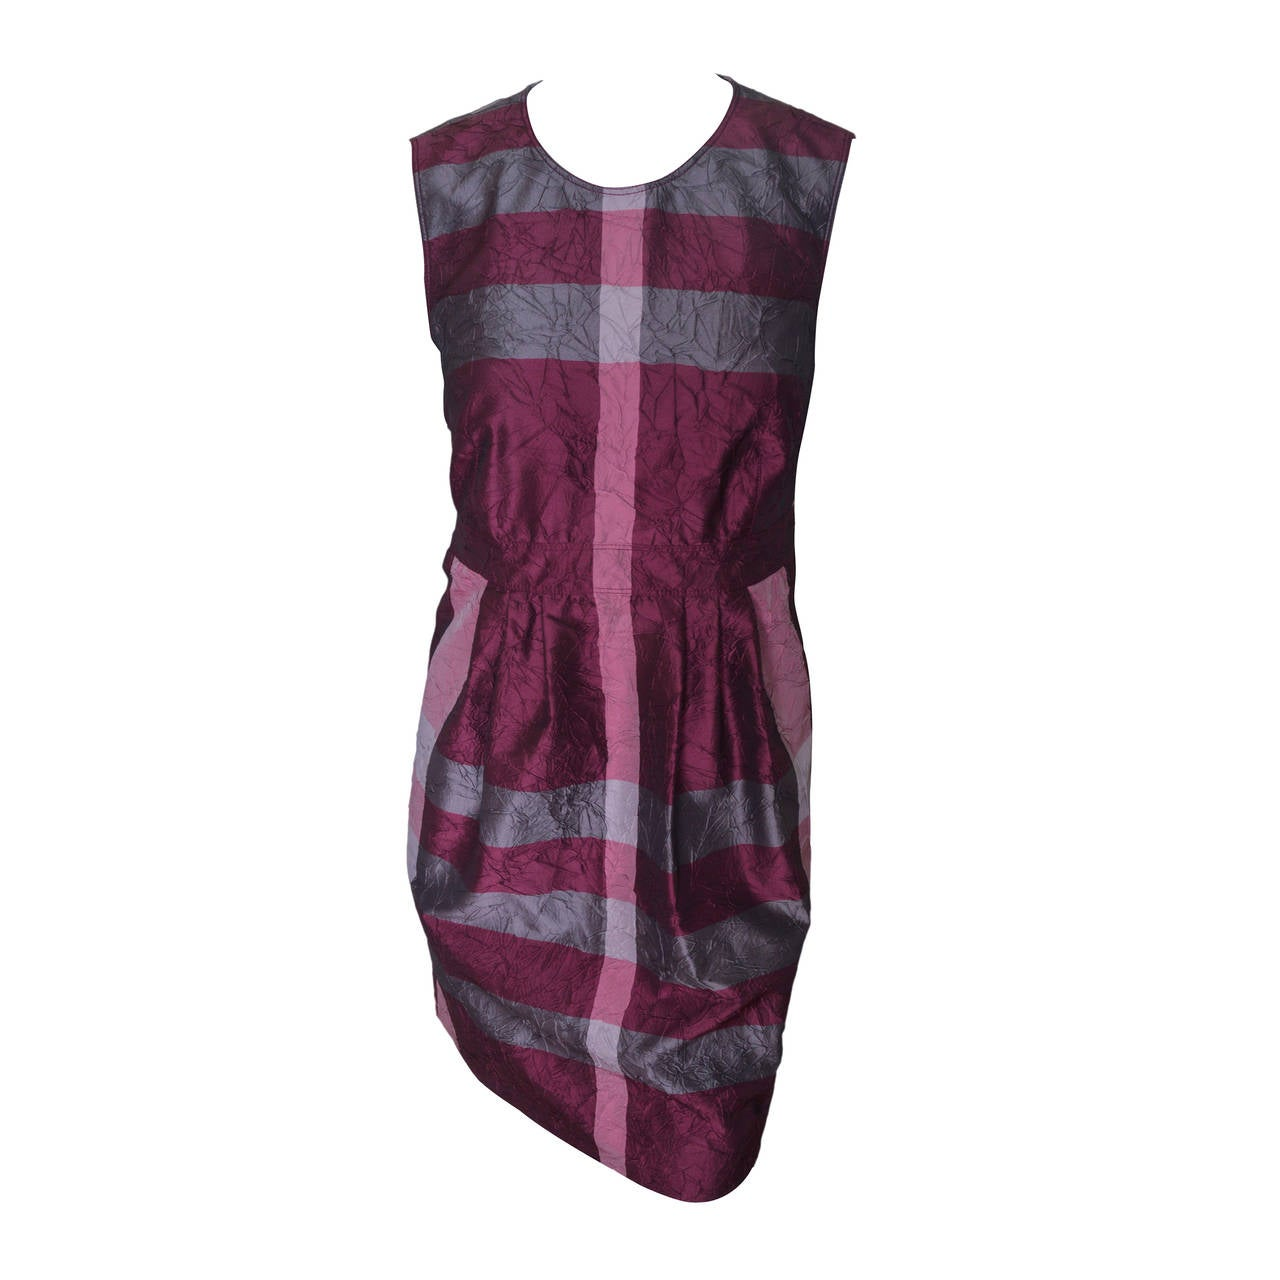 Burberry Iridescent Crinkled Check Dress